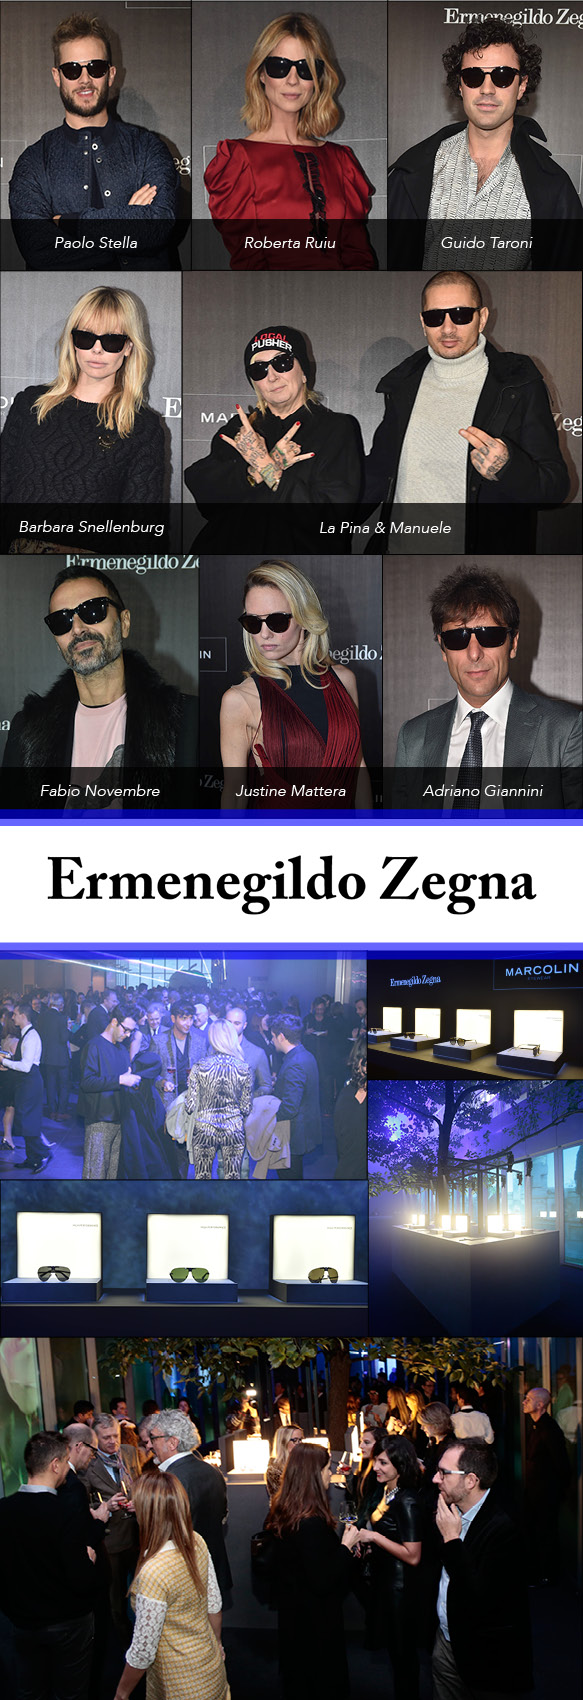 The scene at Ermenegildo Zegna's recent eyewear collection launch party in Milan, Italy